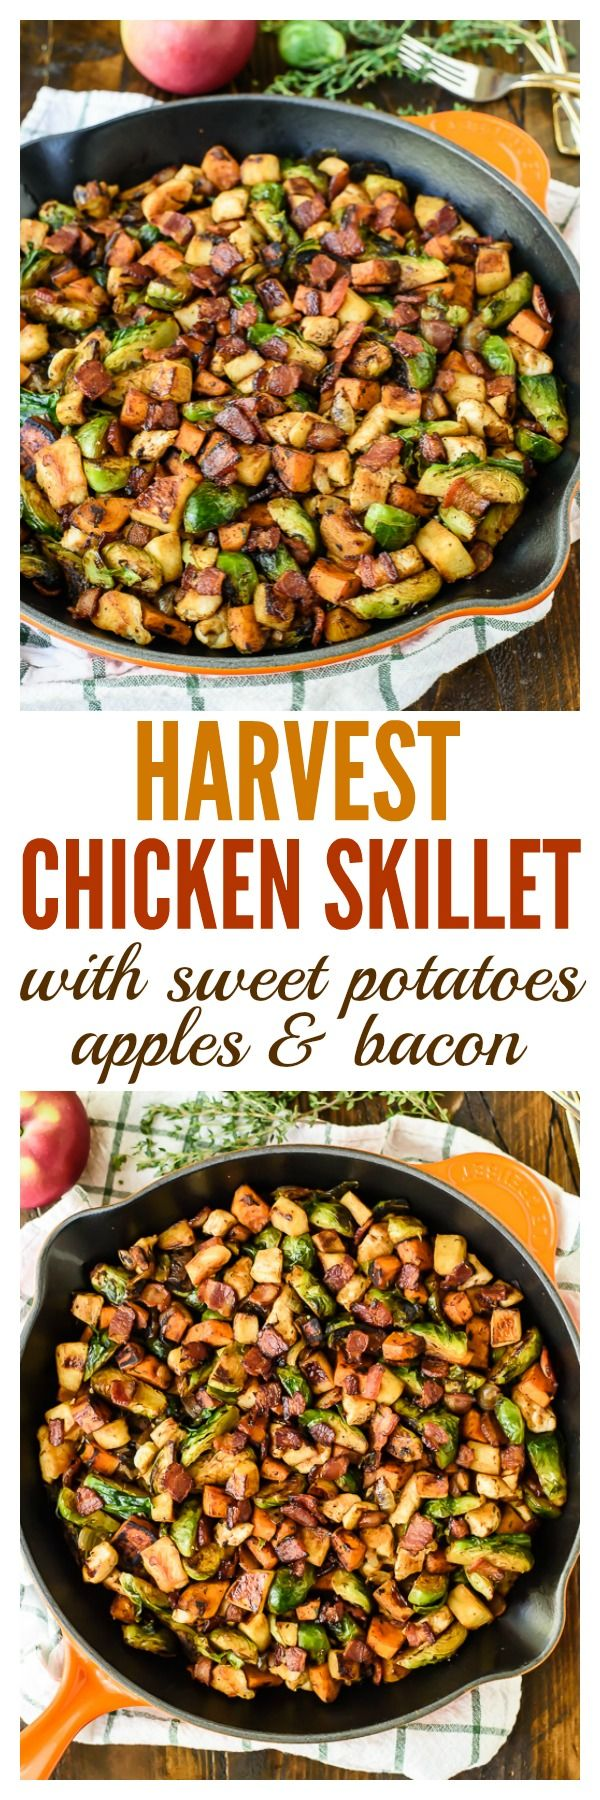 Harvest Chicken Skillet with Sweet Potatoes, Apples, Brussels Sprouts and Bacon - (I used diced pancetta, added paprika and cayenne, used Fuji apple and used half stock and half sparkling cider, purple sweet potatoes. Good.)